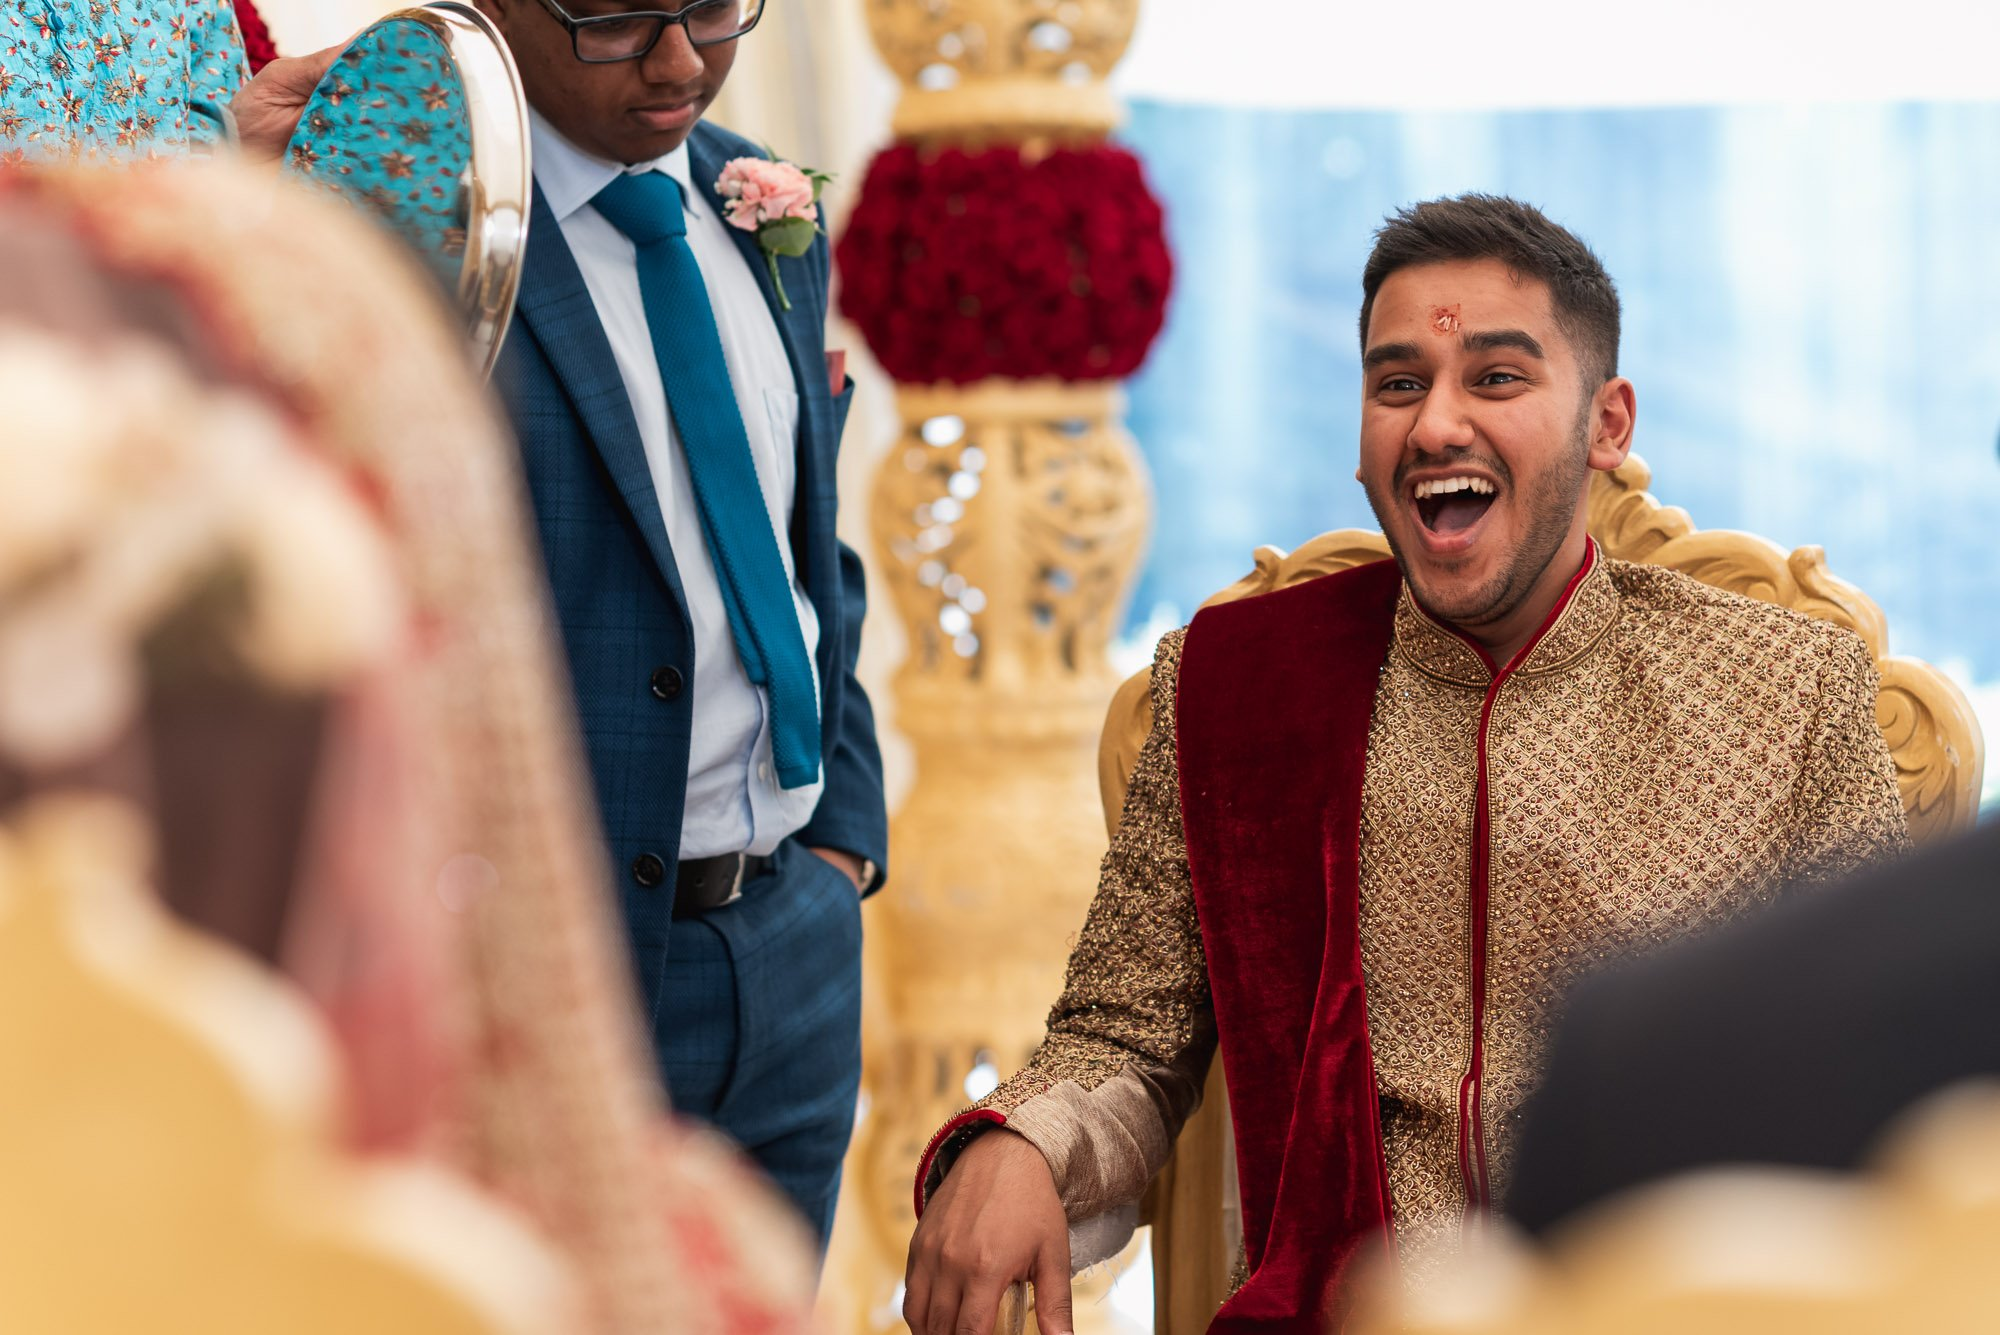 Dunchurch Park Hotel, Asian wedding photographer Midlands, antrapat